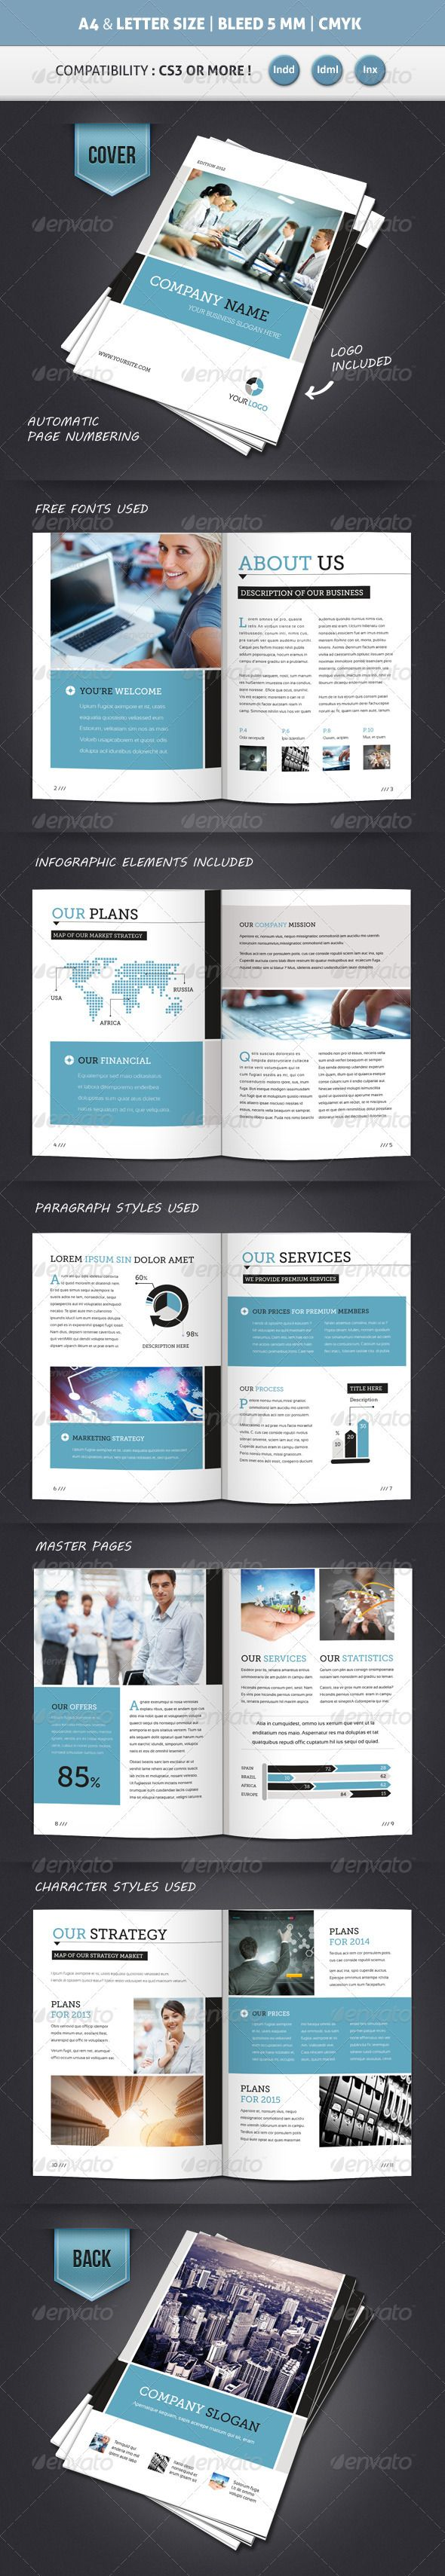 Corporate Brochure Template A4 & Letter 12 Pages | Corporate ...